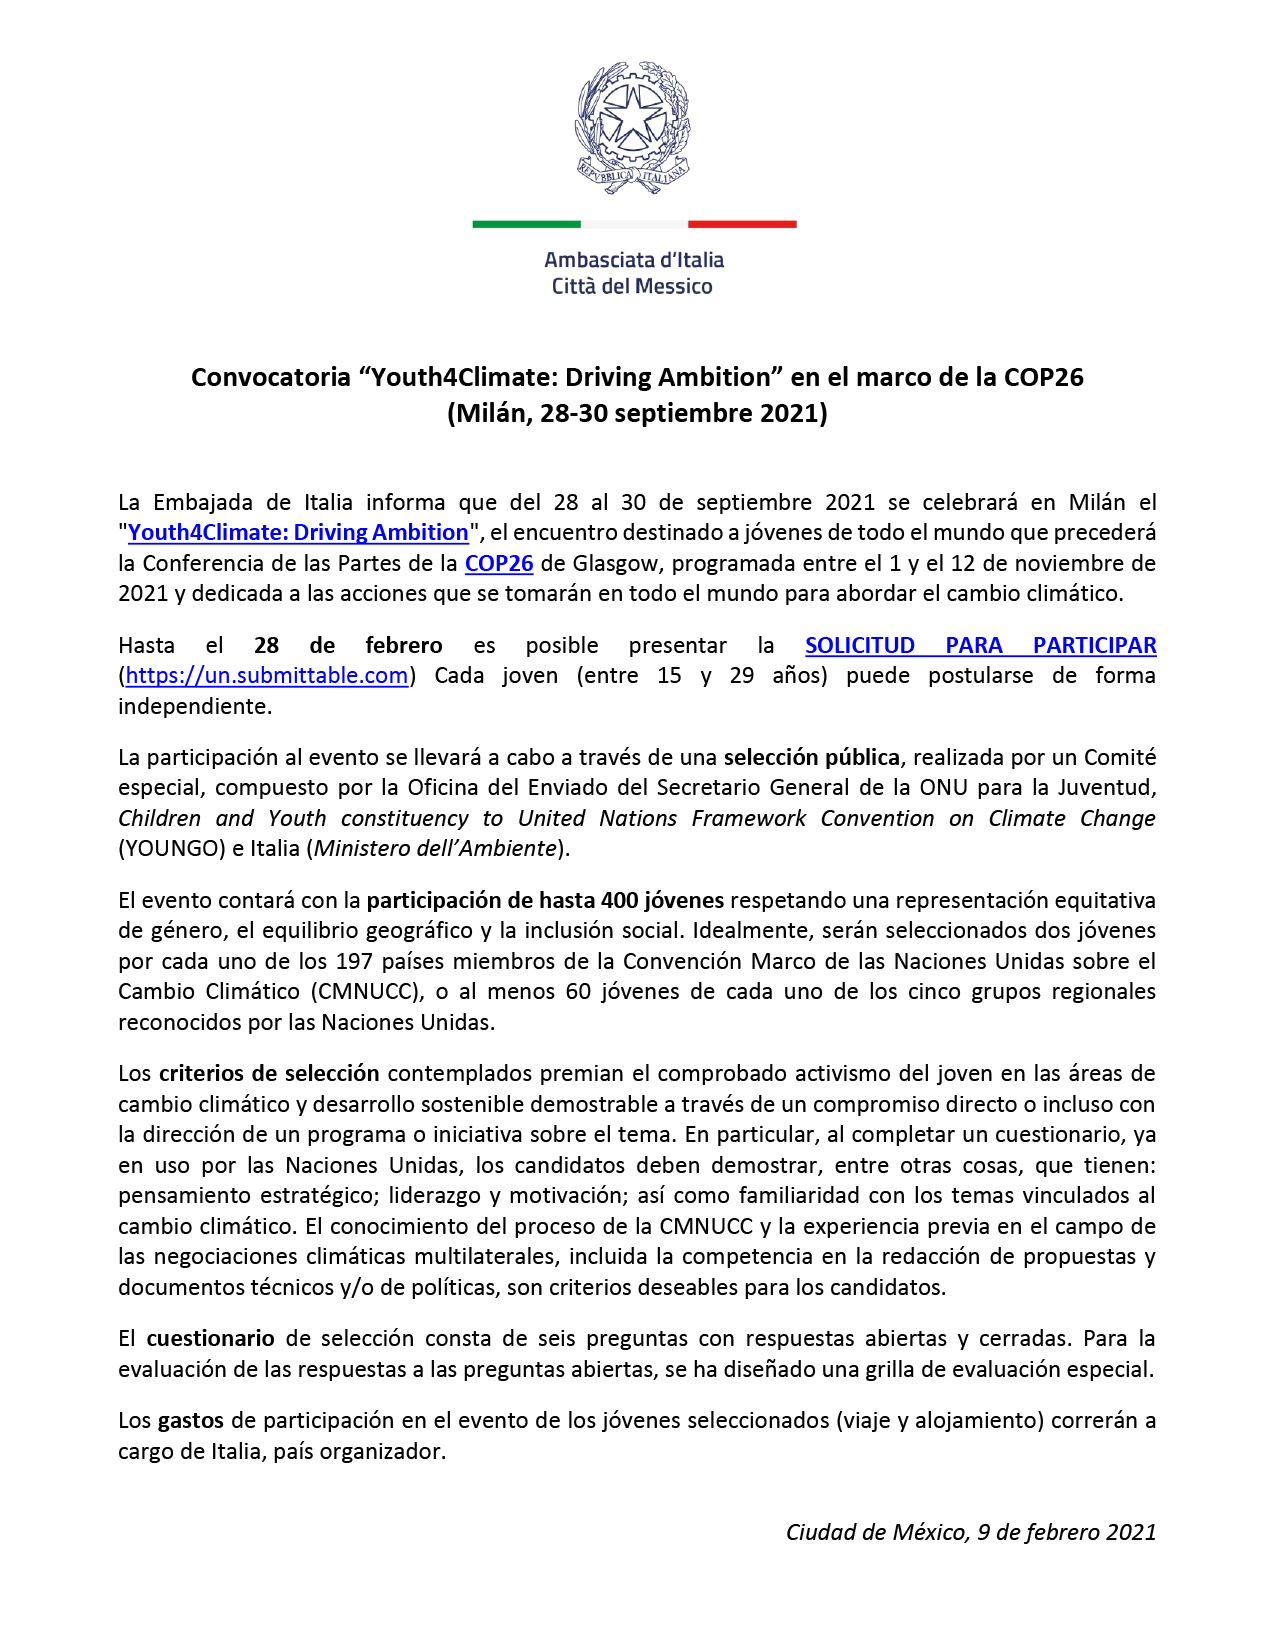 /cms/uploads/image/file/632216/comunicado_Convocatoria_Youth4Climate-Driving_ambition_ESP.jpg